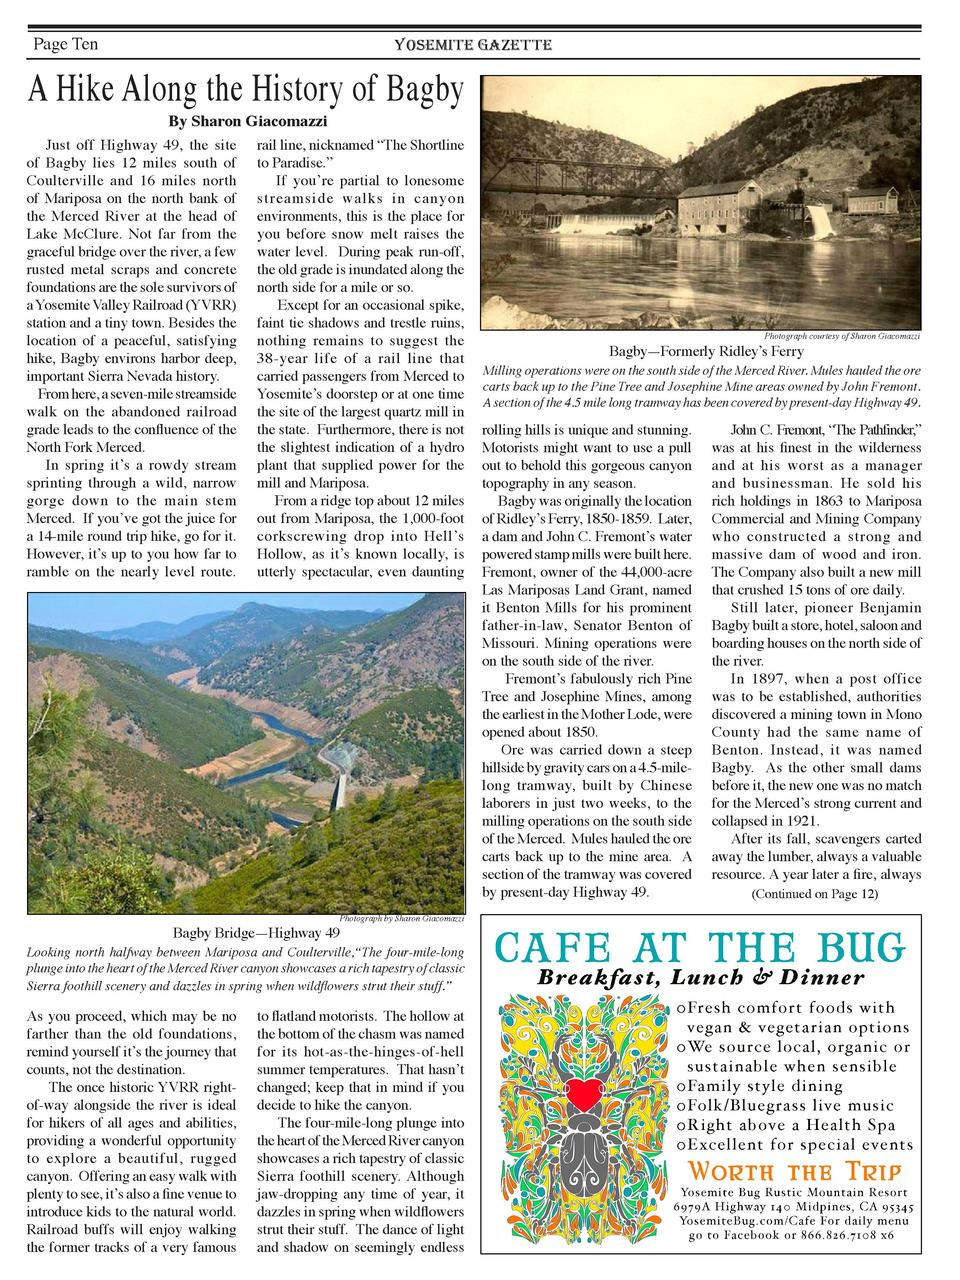 Page Ten  YOSEMITE GAZETTE  A Hike Along the History of Bagby By Sharon Giacomazzi    Just off Highway 49, the site of Bag...